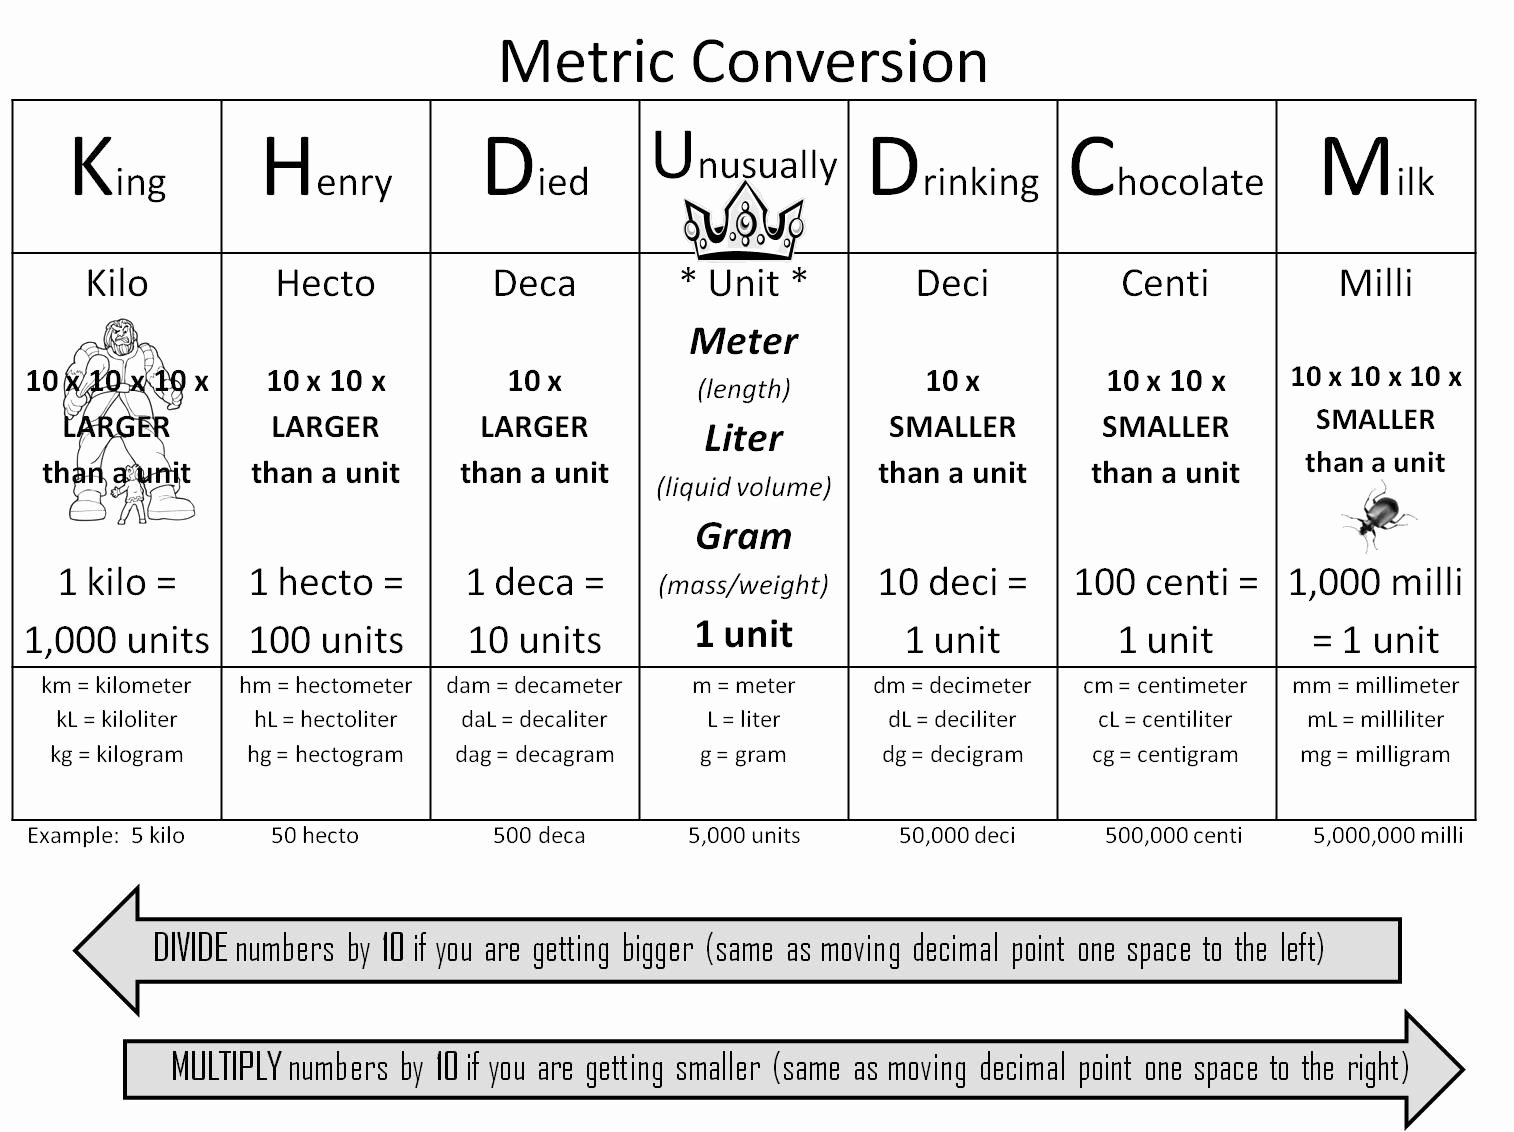 Units Of Measurement Conversion Chart Fresh Strong Armor Math Metric Conversion Trick